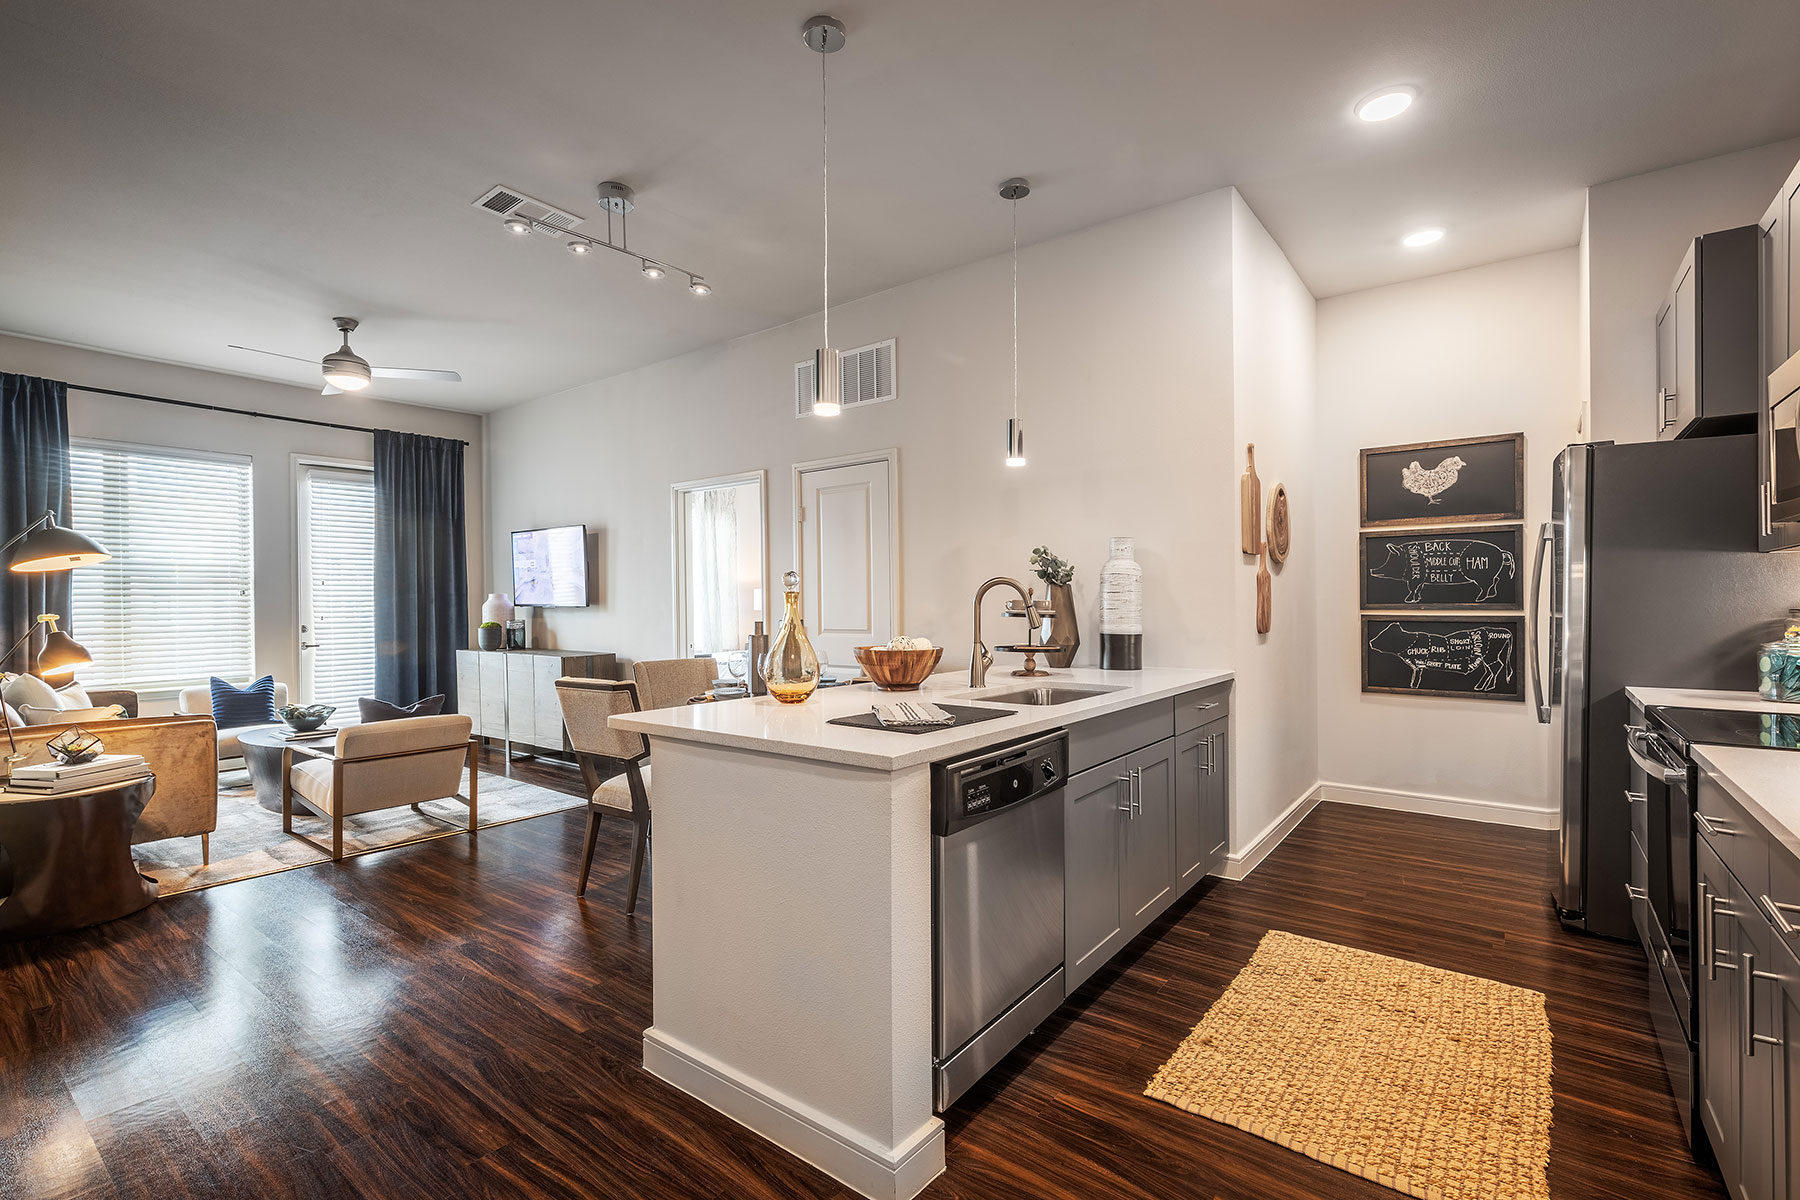 Wide shot of the living area with large windows and comfortable seating, beautiful wooden floor, and kitchen with stainless steel appliances, pendant lights, and farm animal artwork.